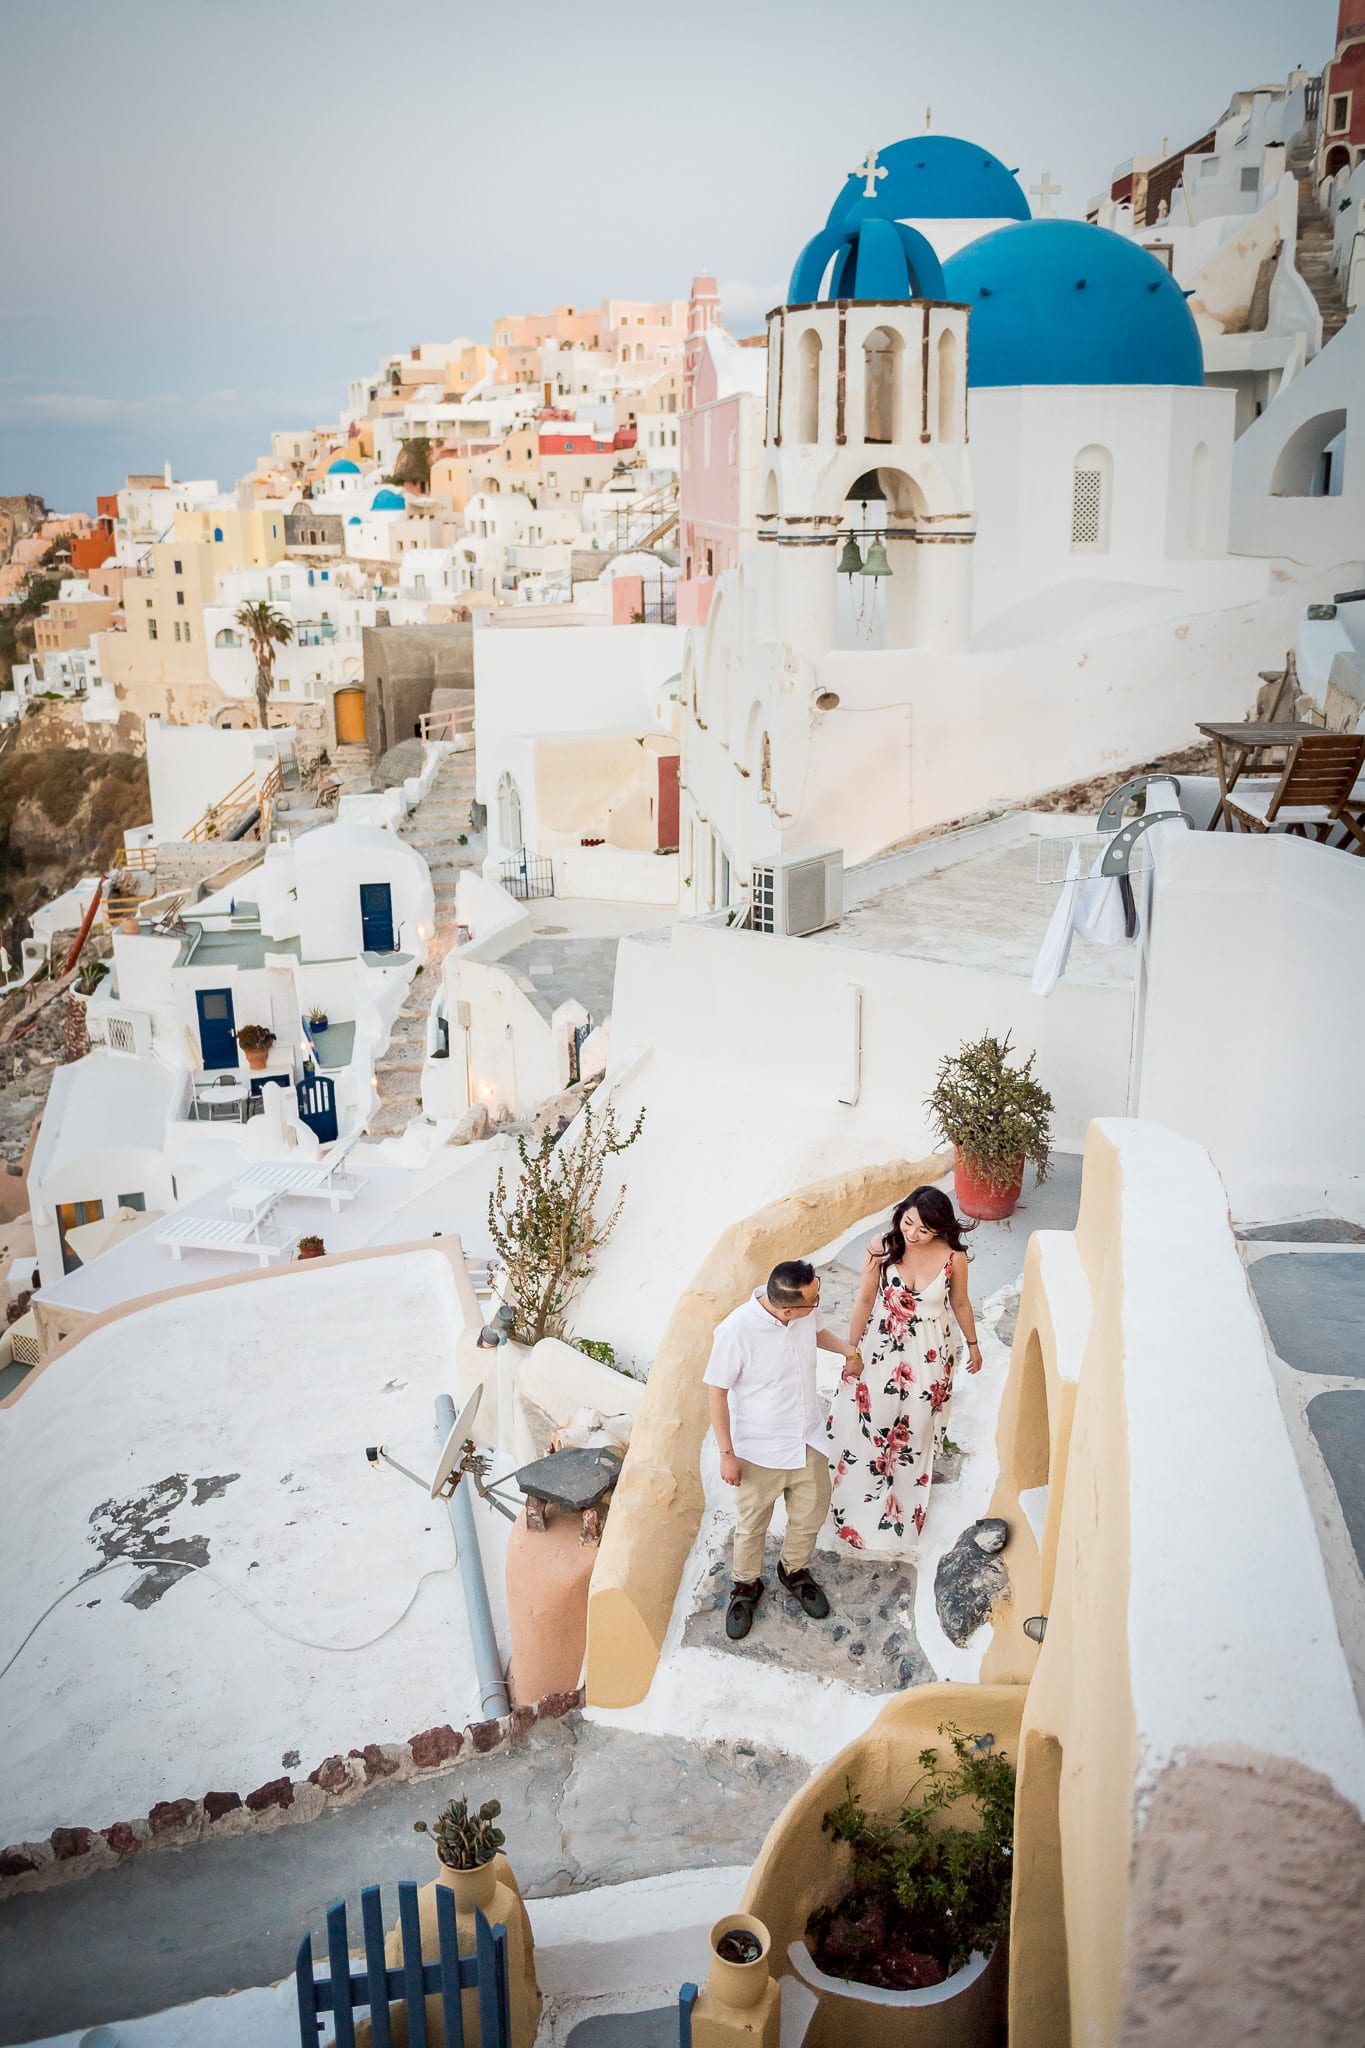 Santorini Honeymoon photo session image of a couple walking down the stone stairs with the colorful Santorini island village of Oia in the background